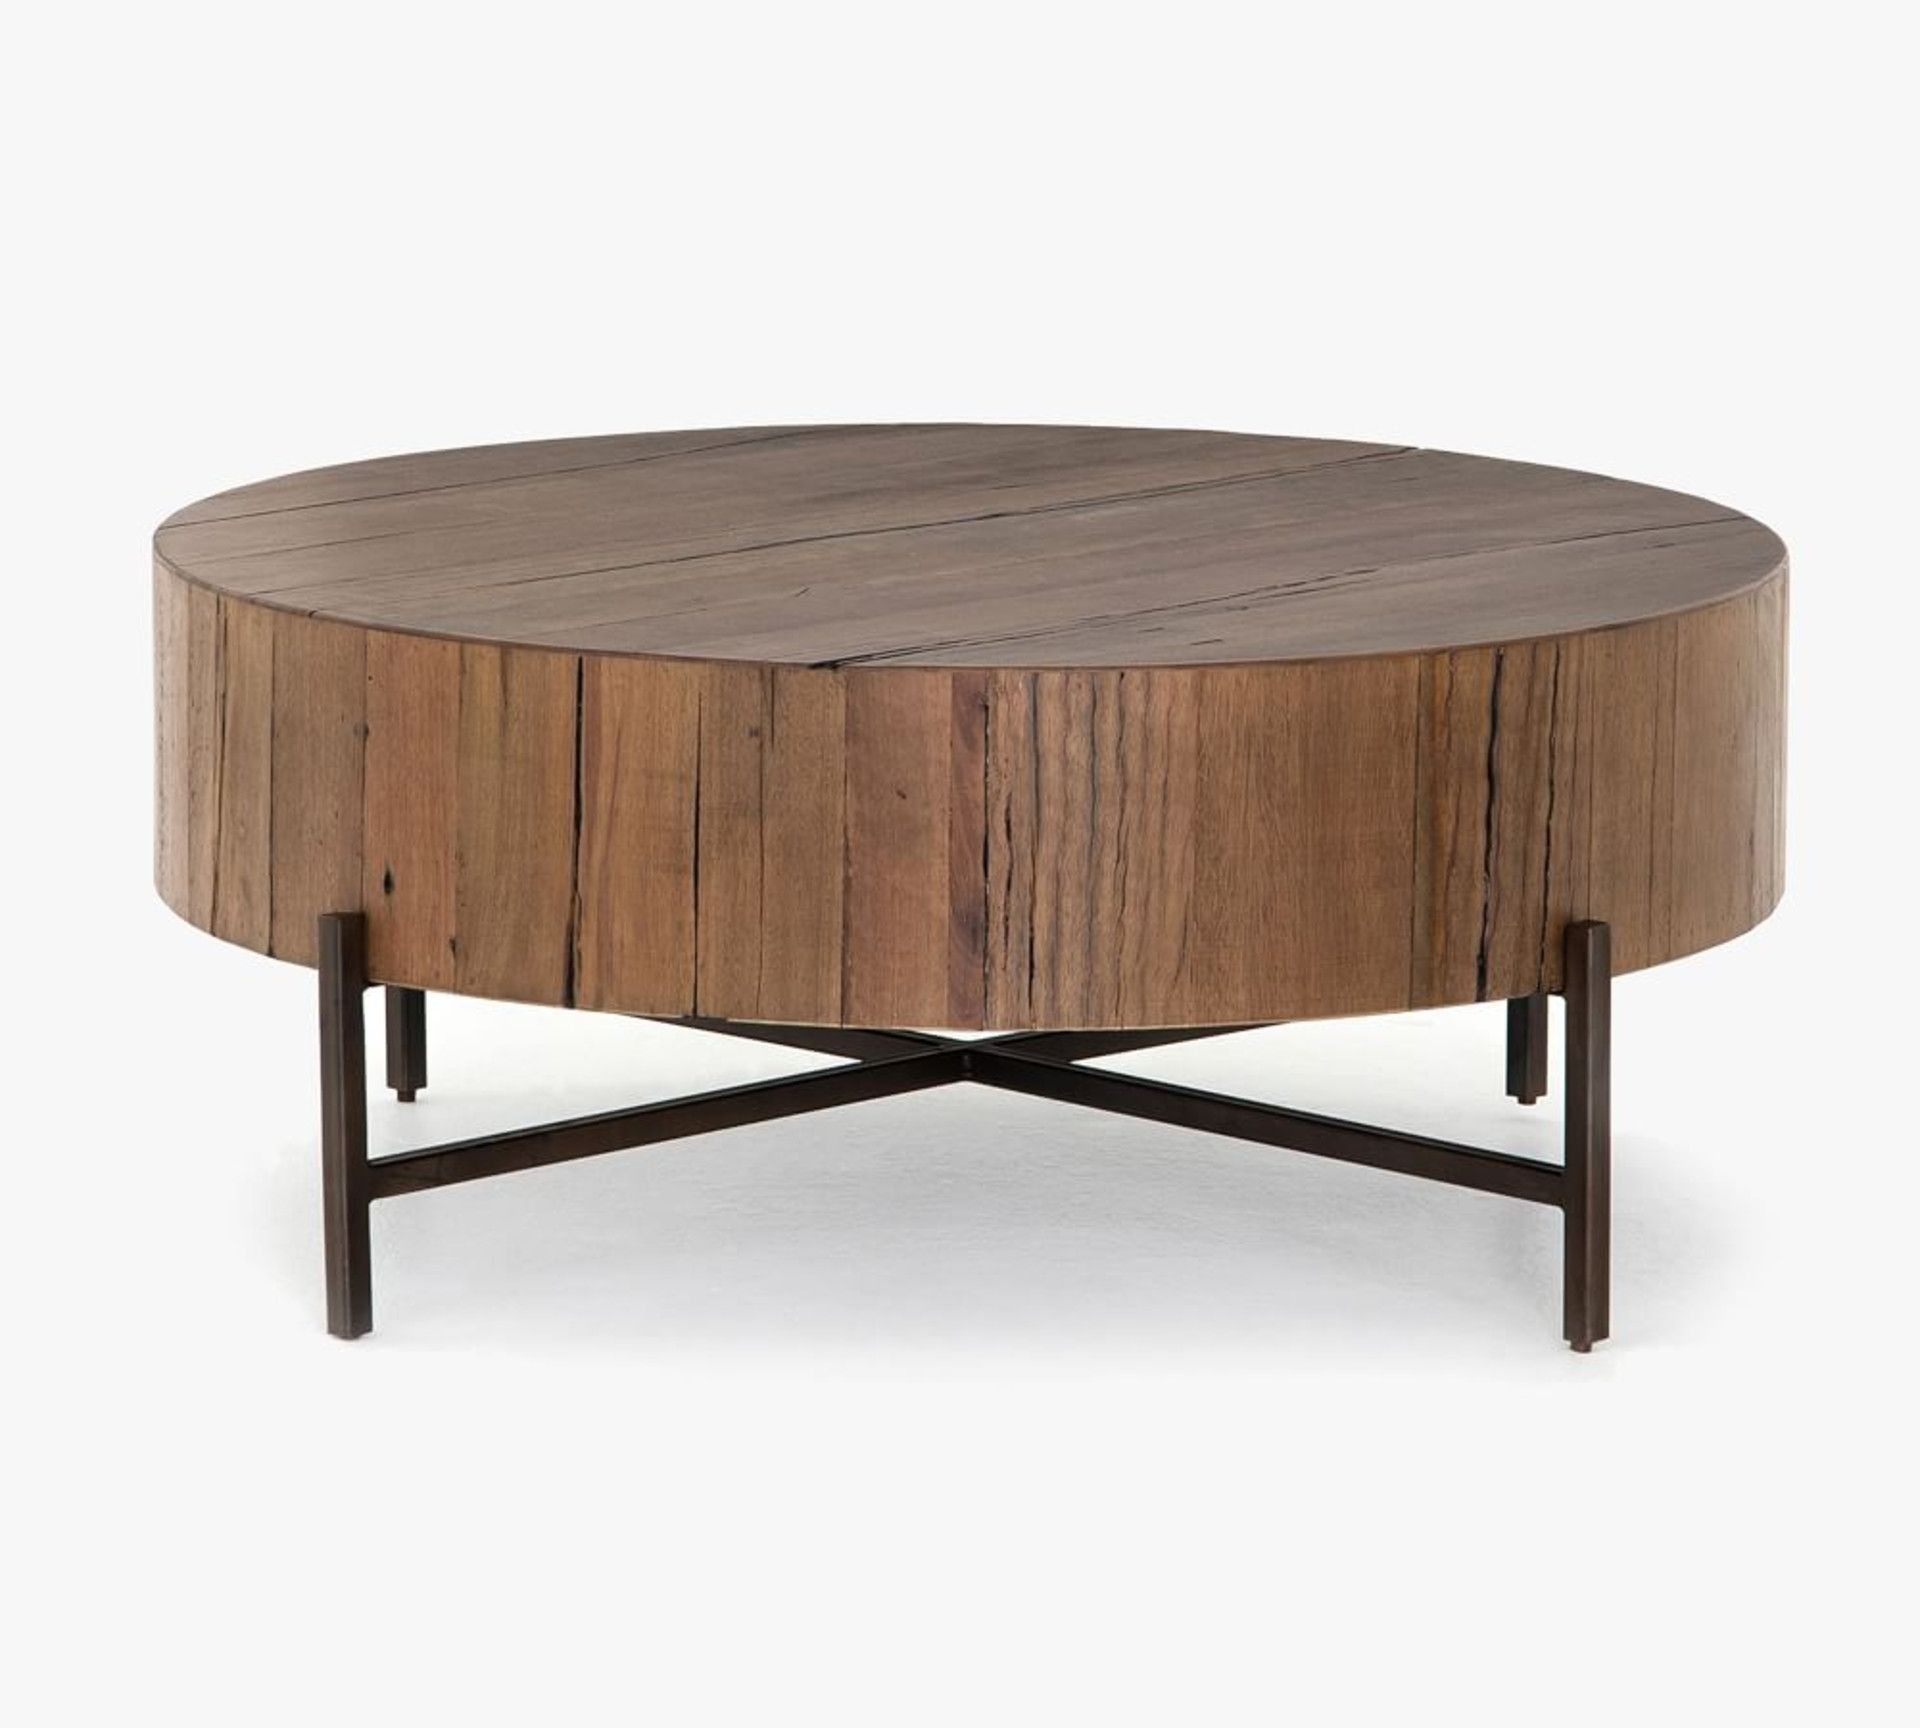 Dunkin 38 Inch Round Coffee Table Sectional Coffee Table Round Wood Coffee Table Coffee Table [ 1288 x 1911 Pixel ]